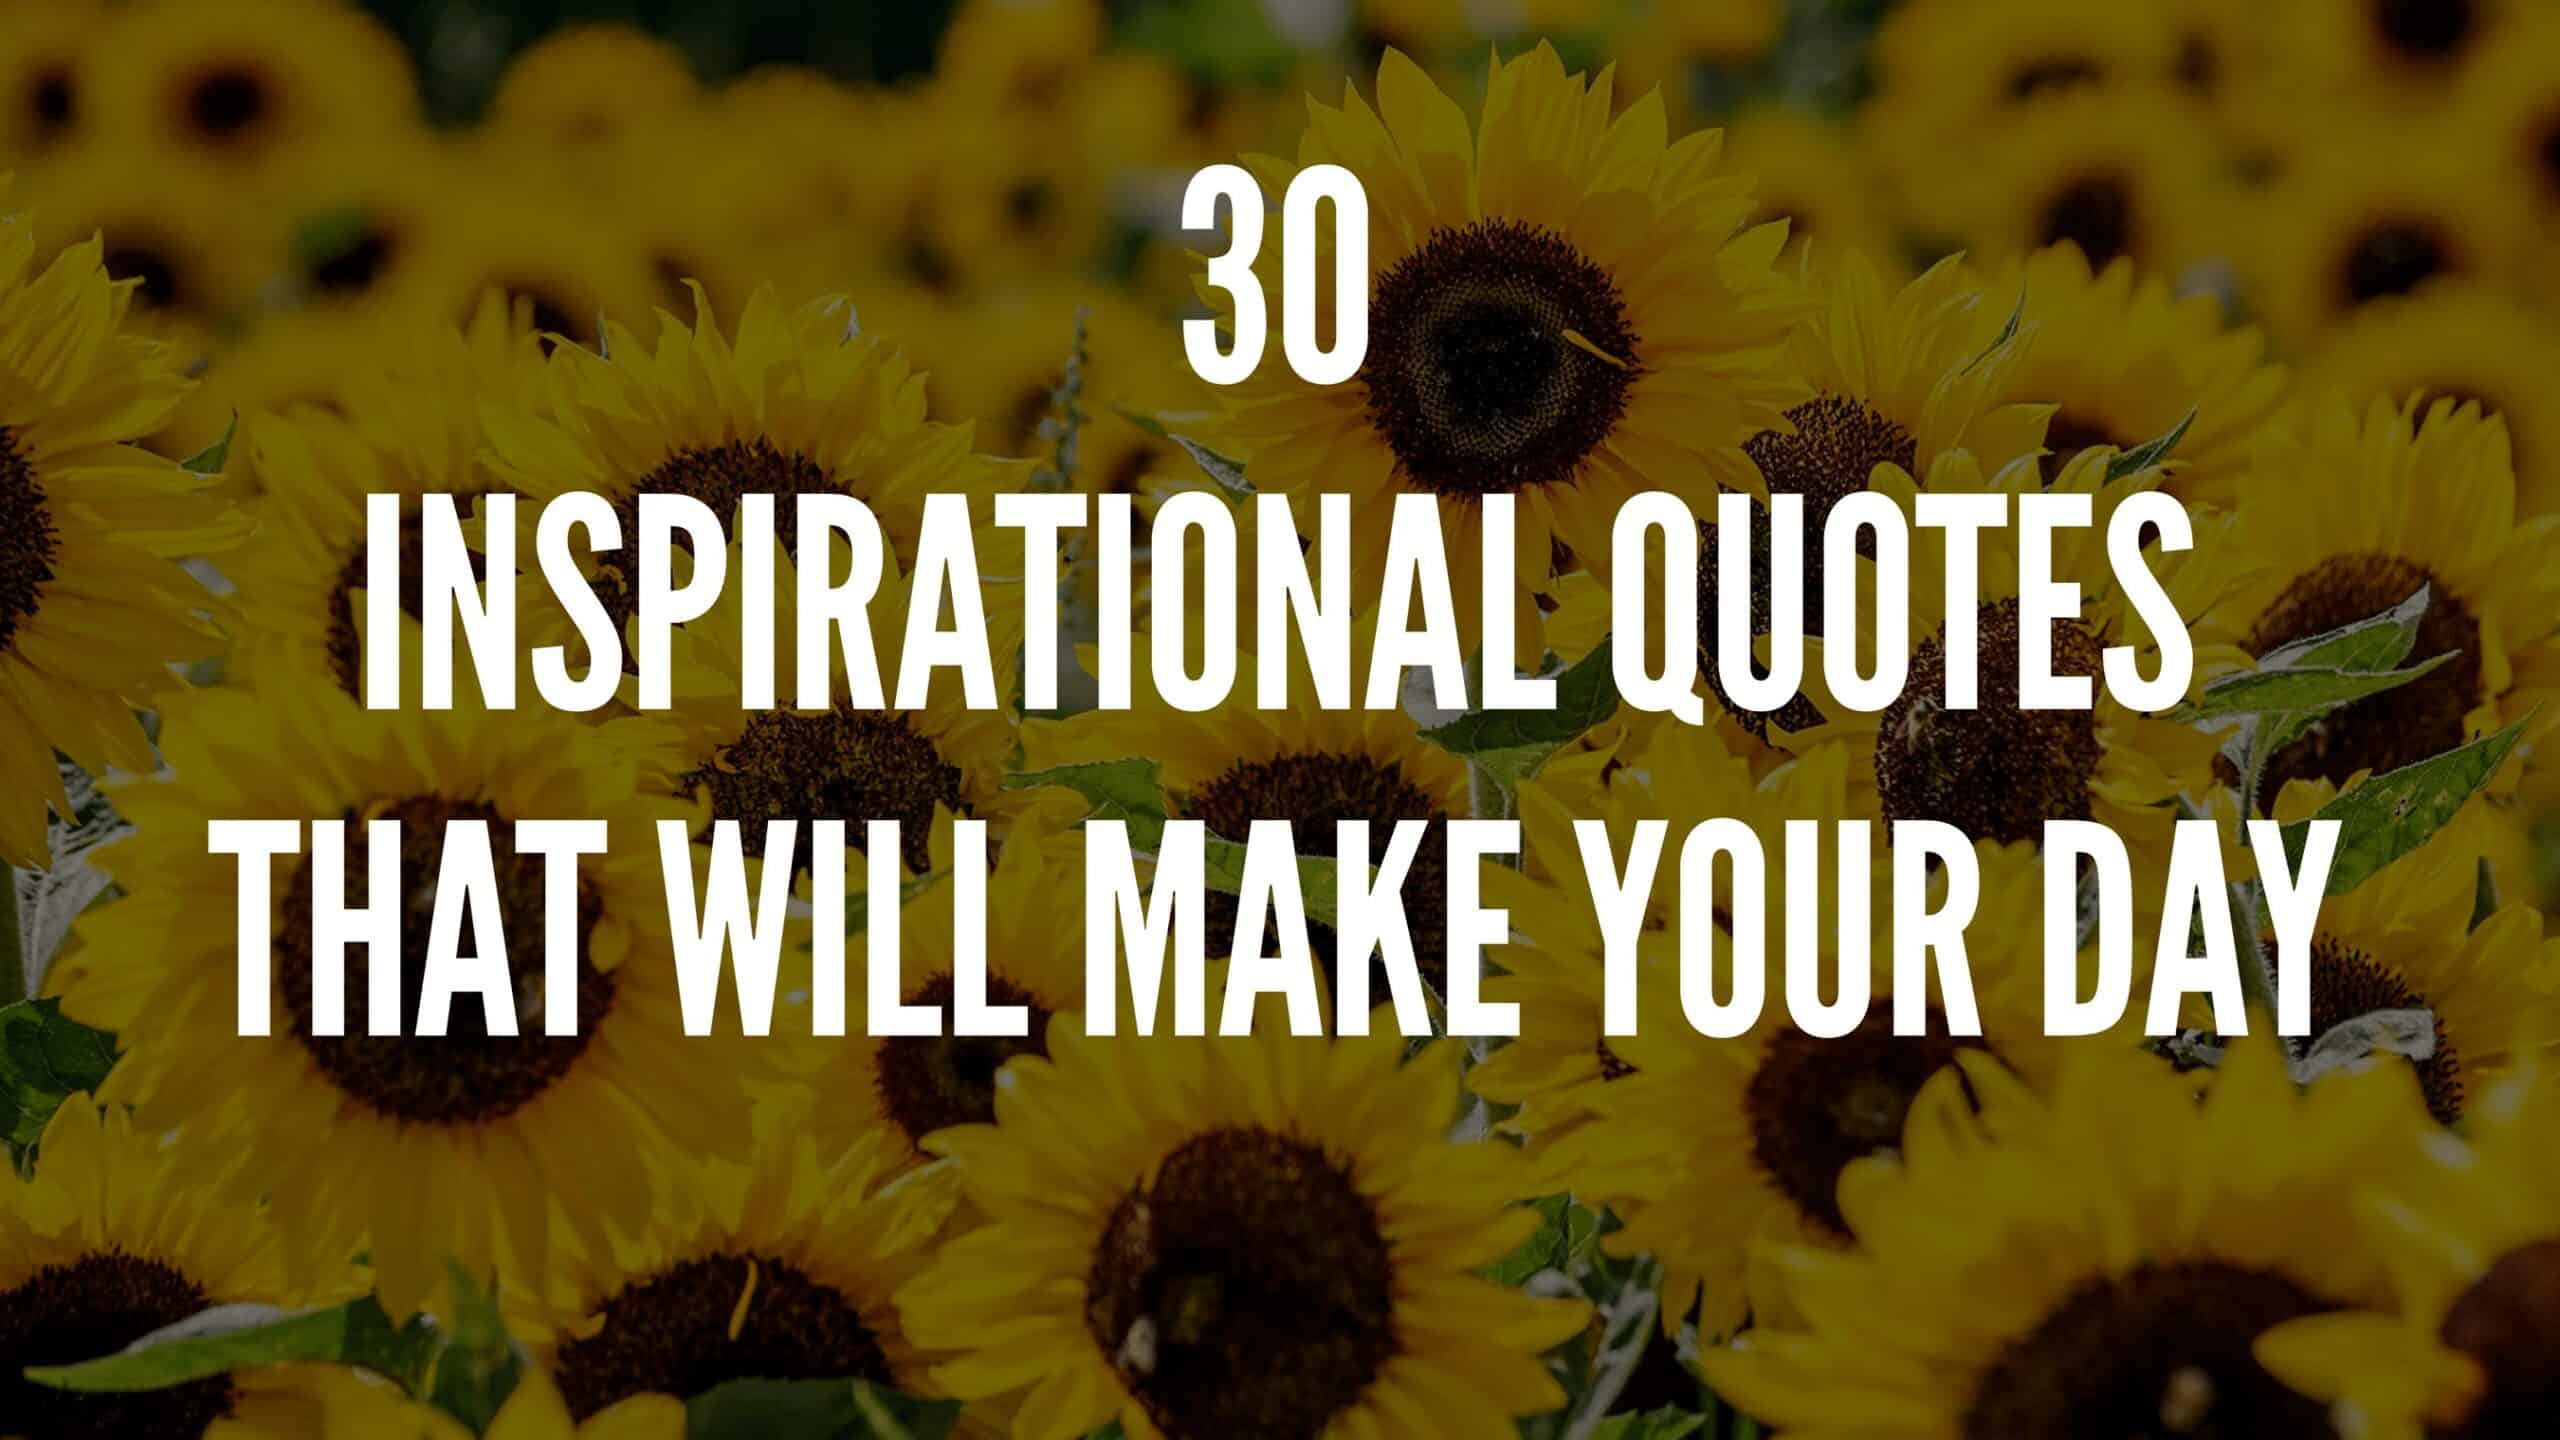 30-inspirational-quotes